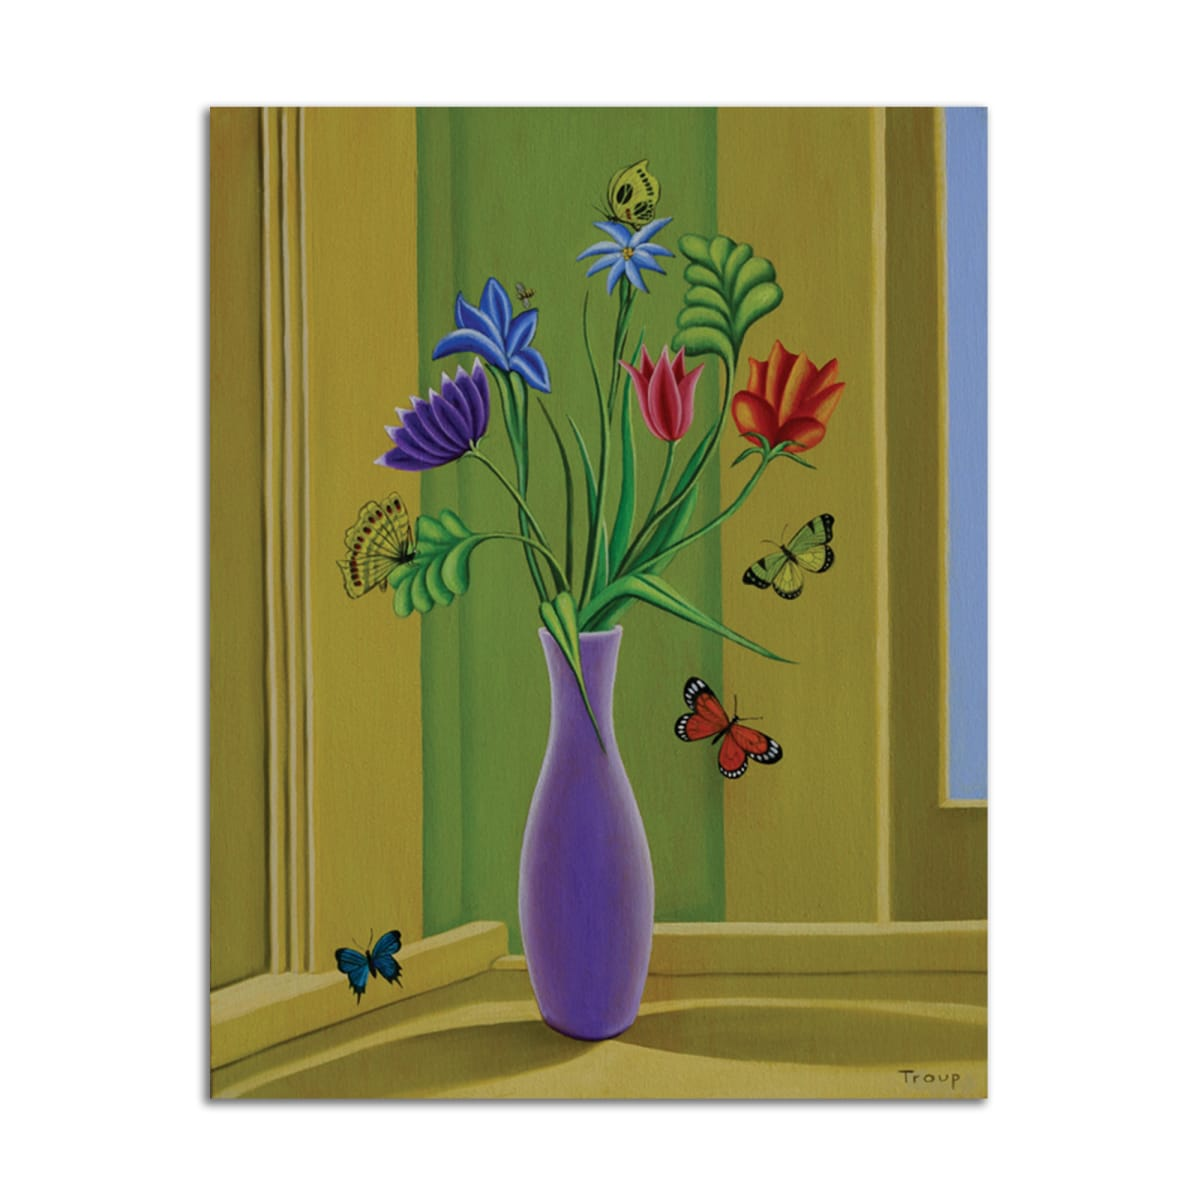 Vase with Butterflies by Jane Troup